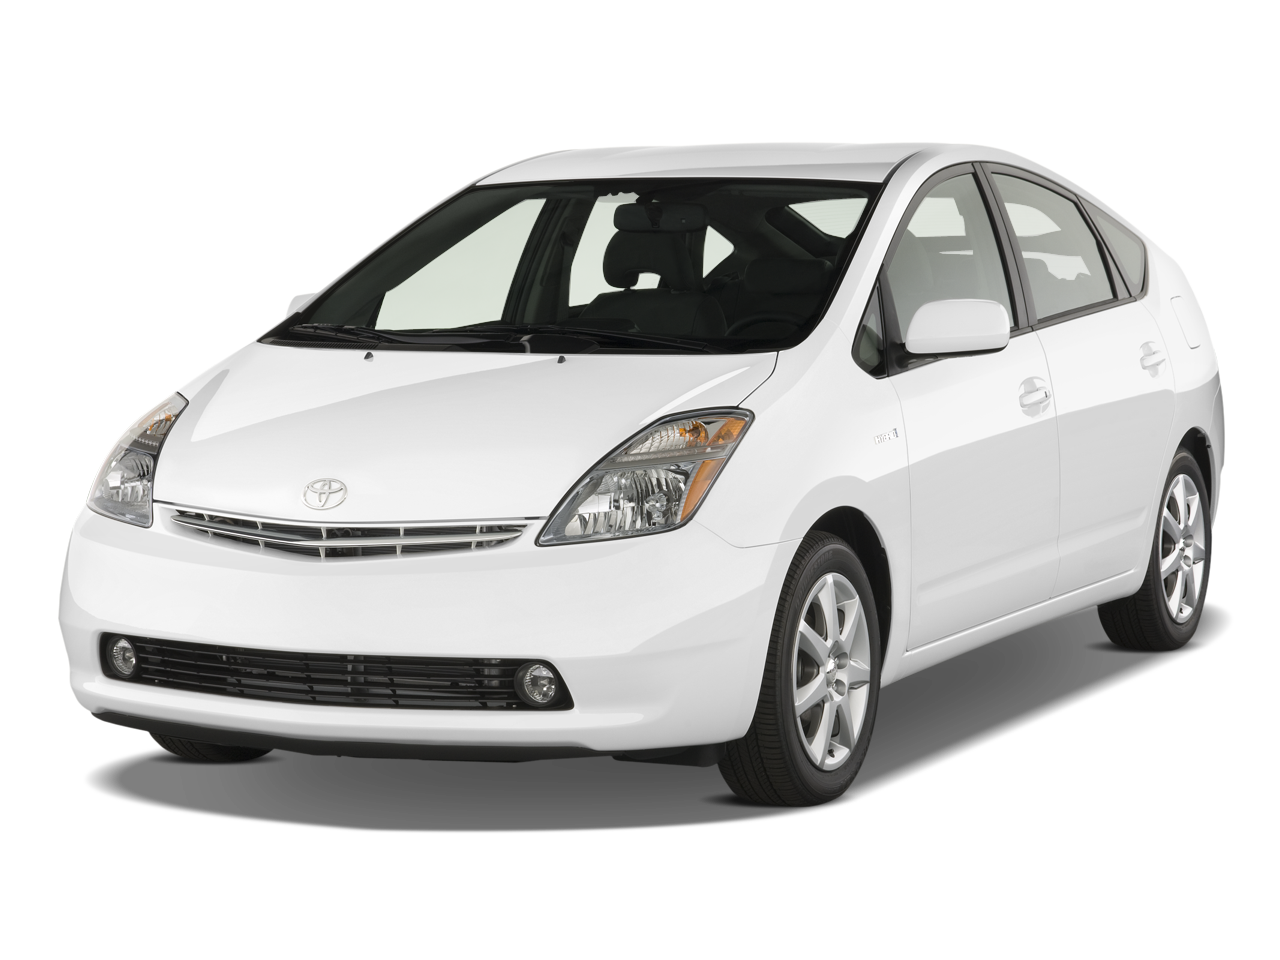 2008 toyota prius touring edition toyota hybrid sedan. Black Bedroom Furniture Sets. Home Design Ideas